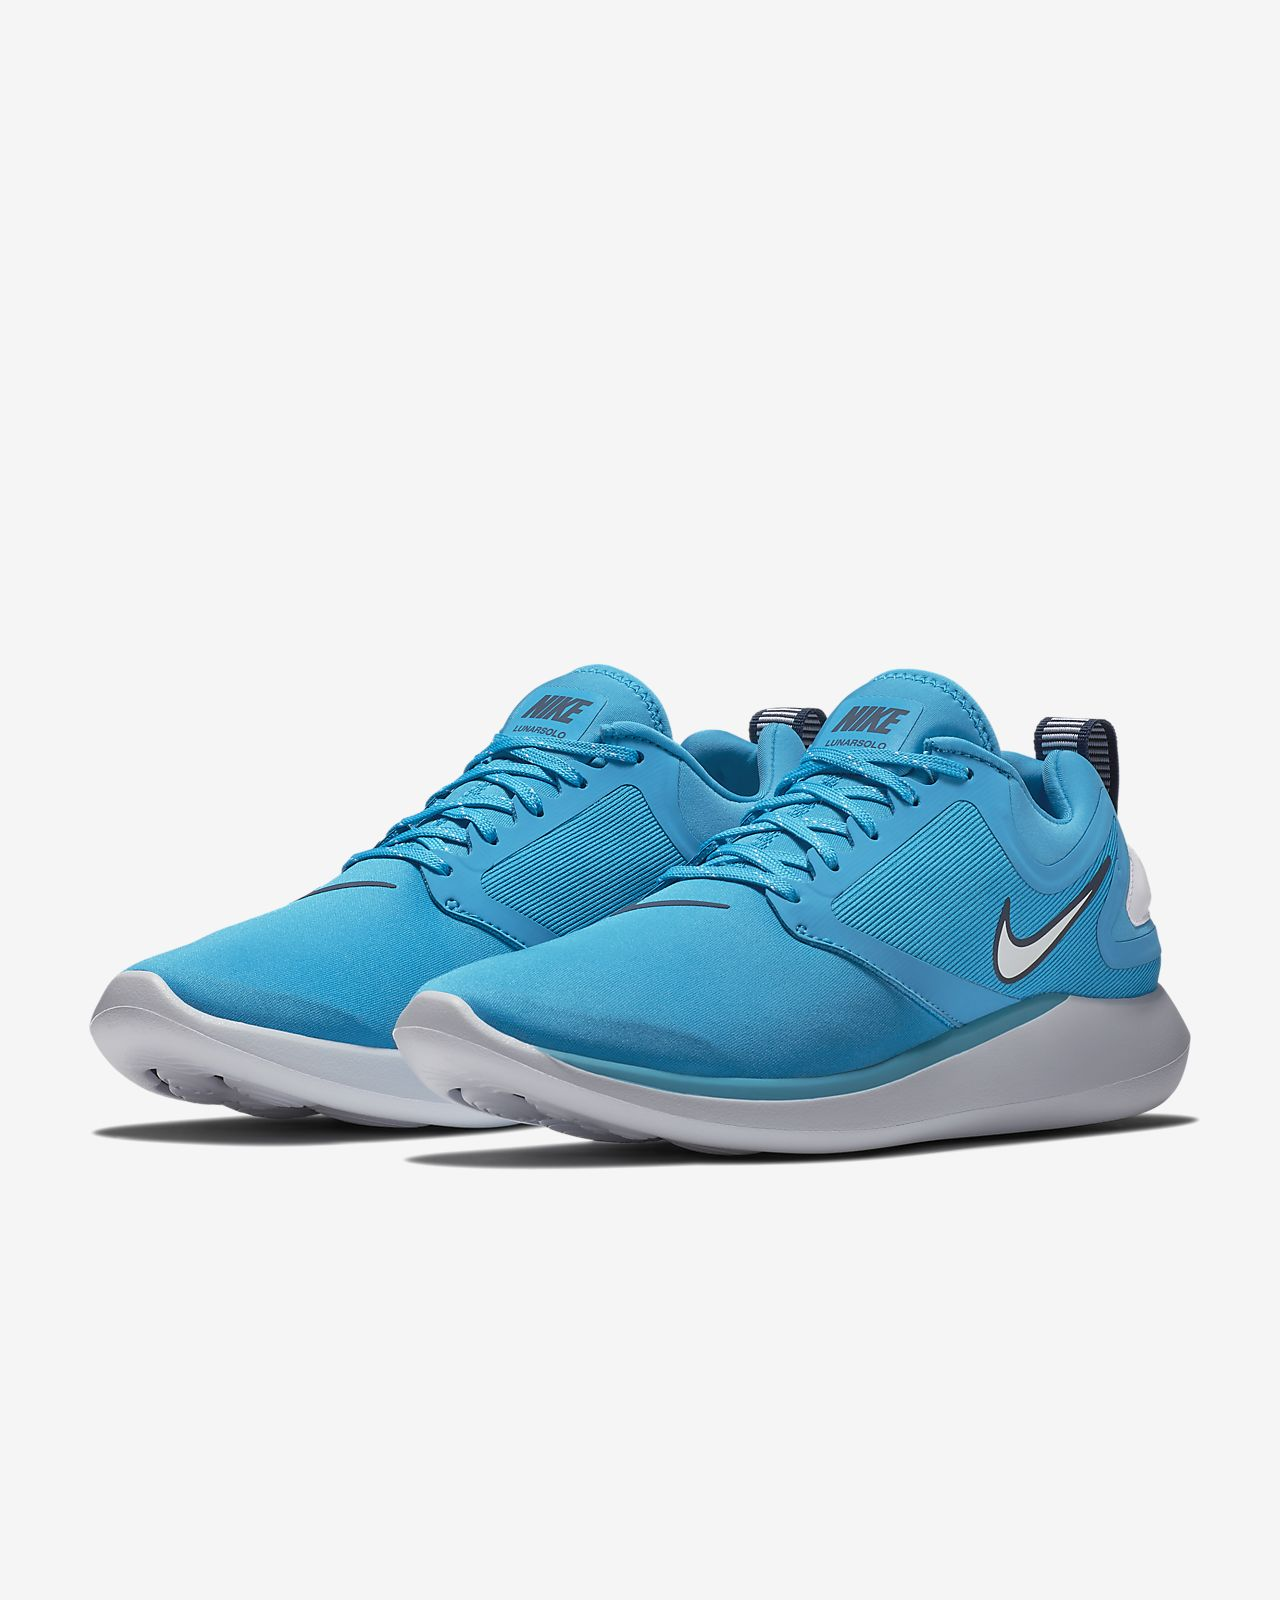 90bcfe64d0 Blue Nike Shoes Womens : Buy Nike Sneakers & Shoes | Air force 1 ...